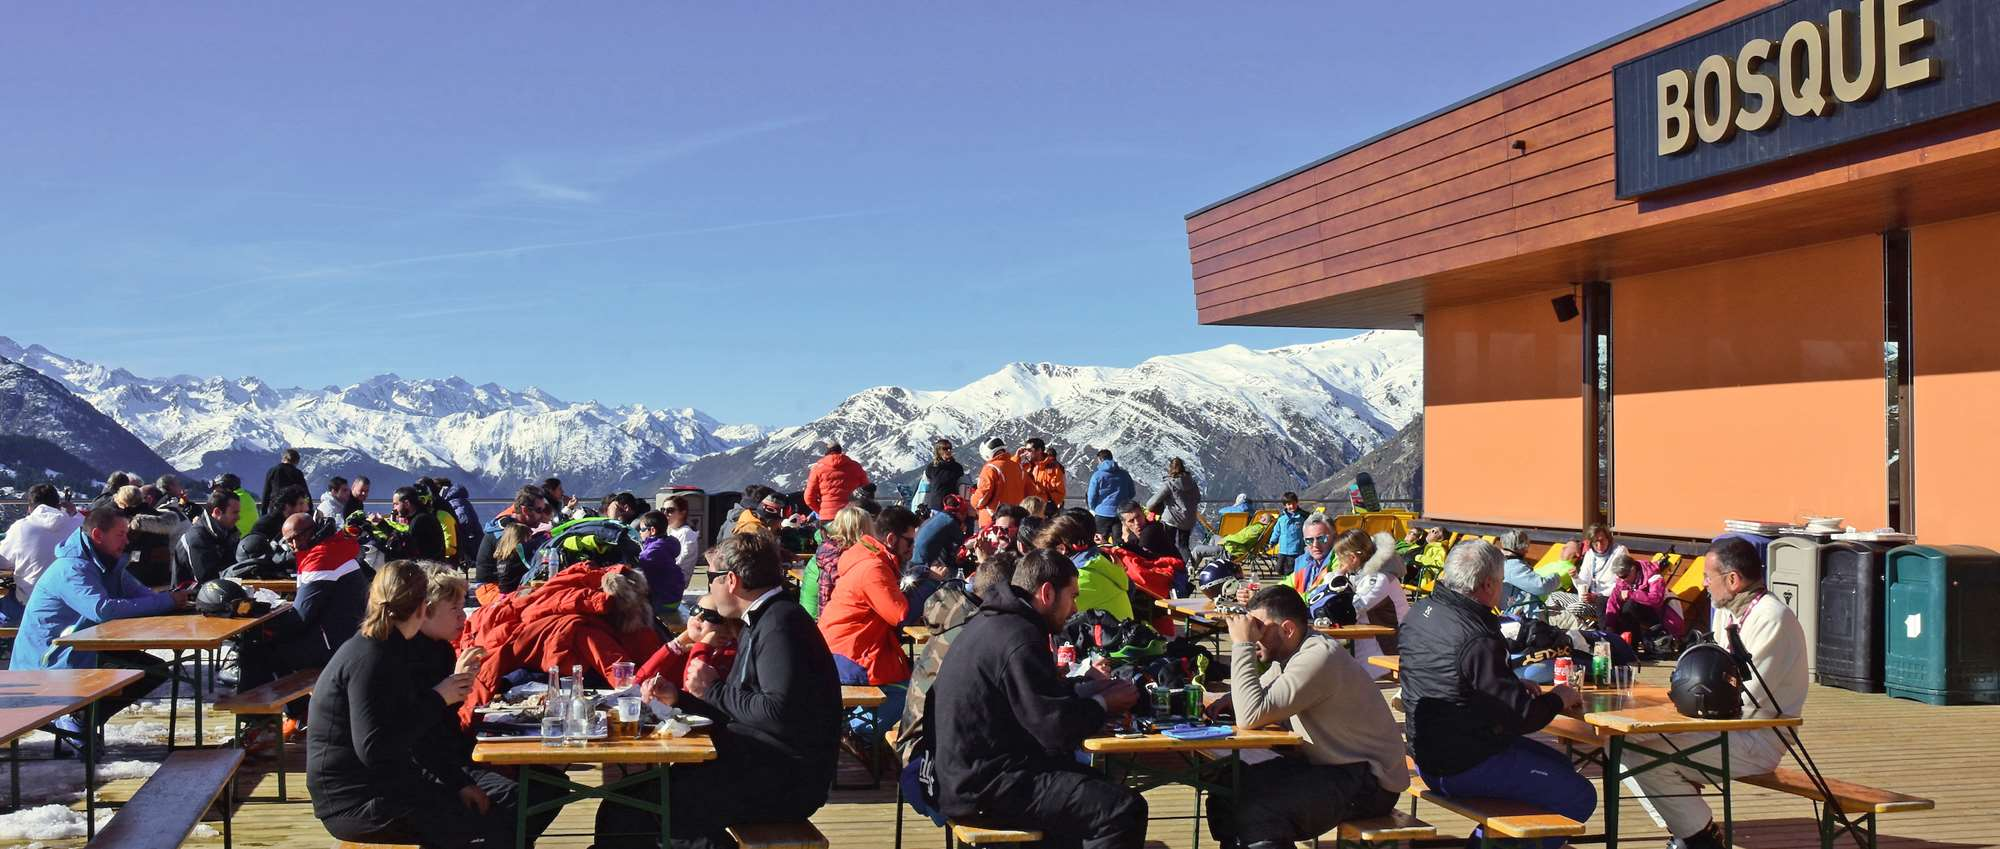 The Bosque restaurant in Baqueira